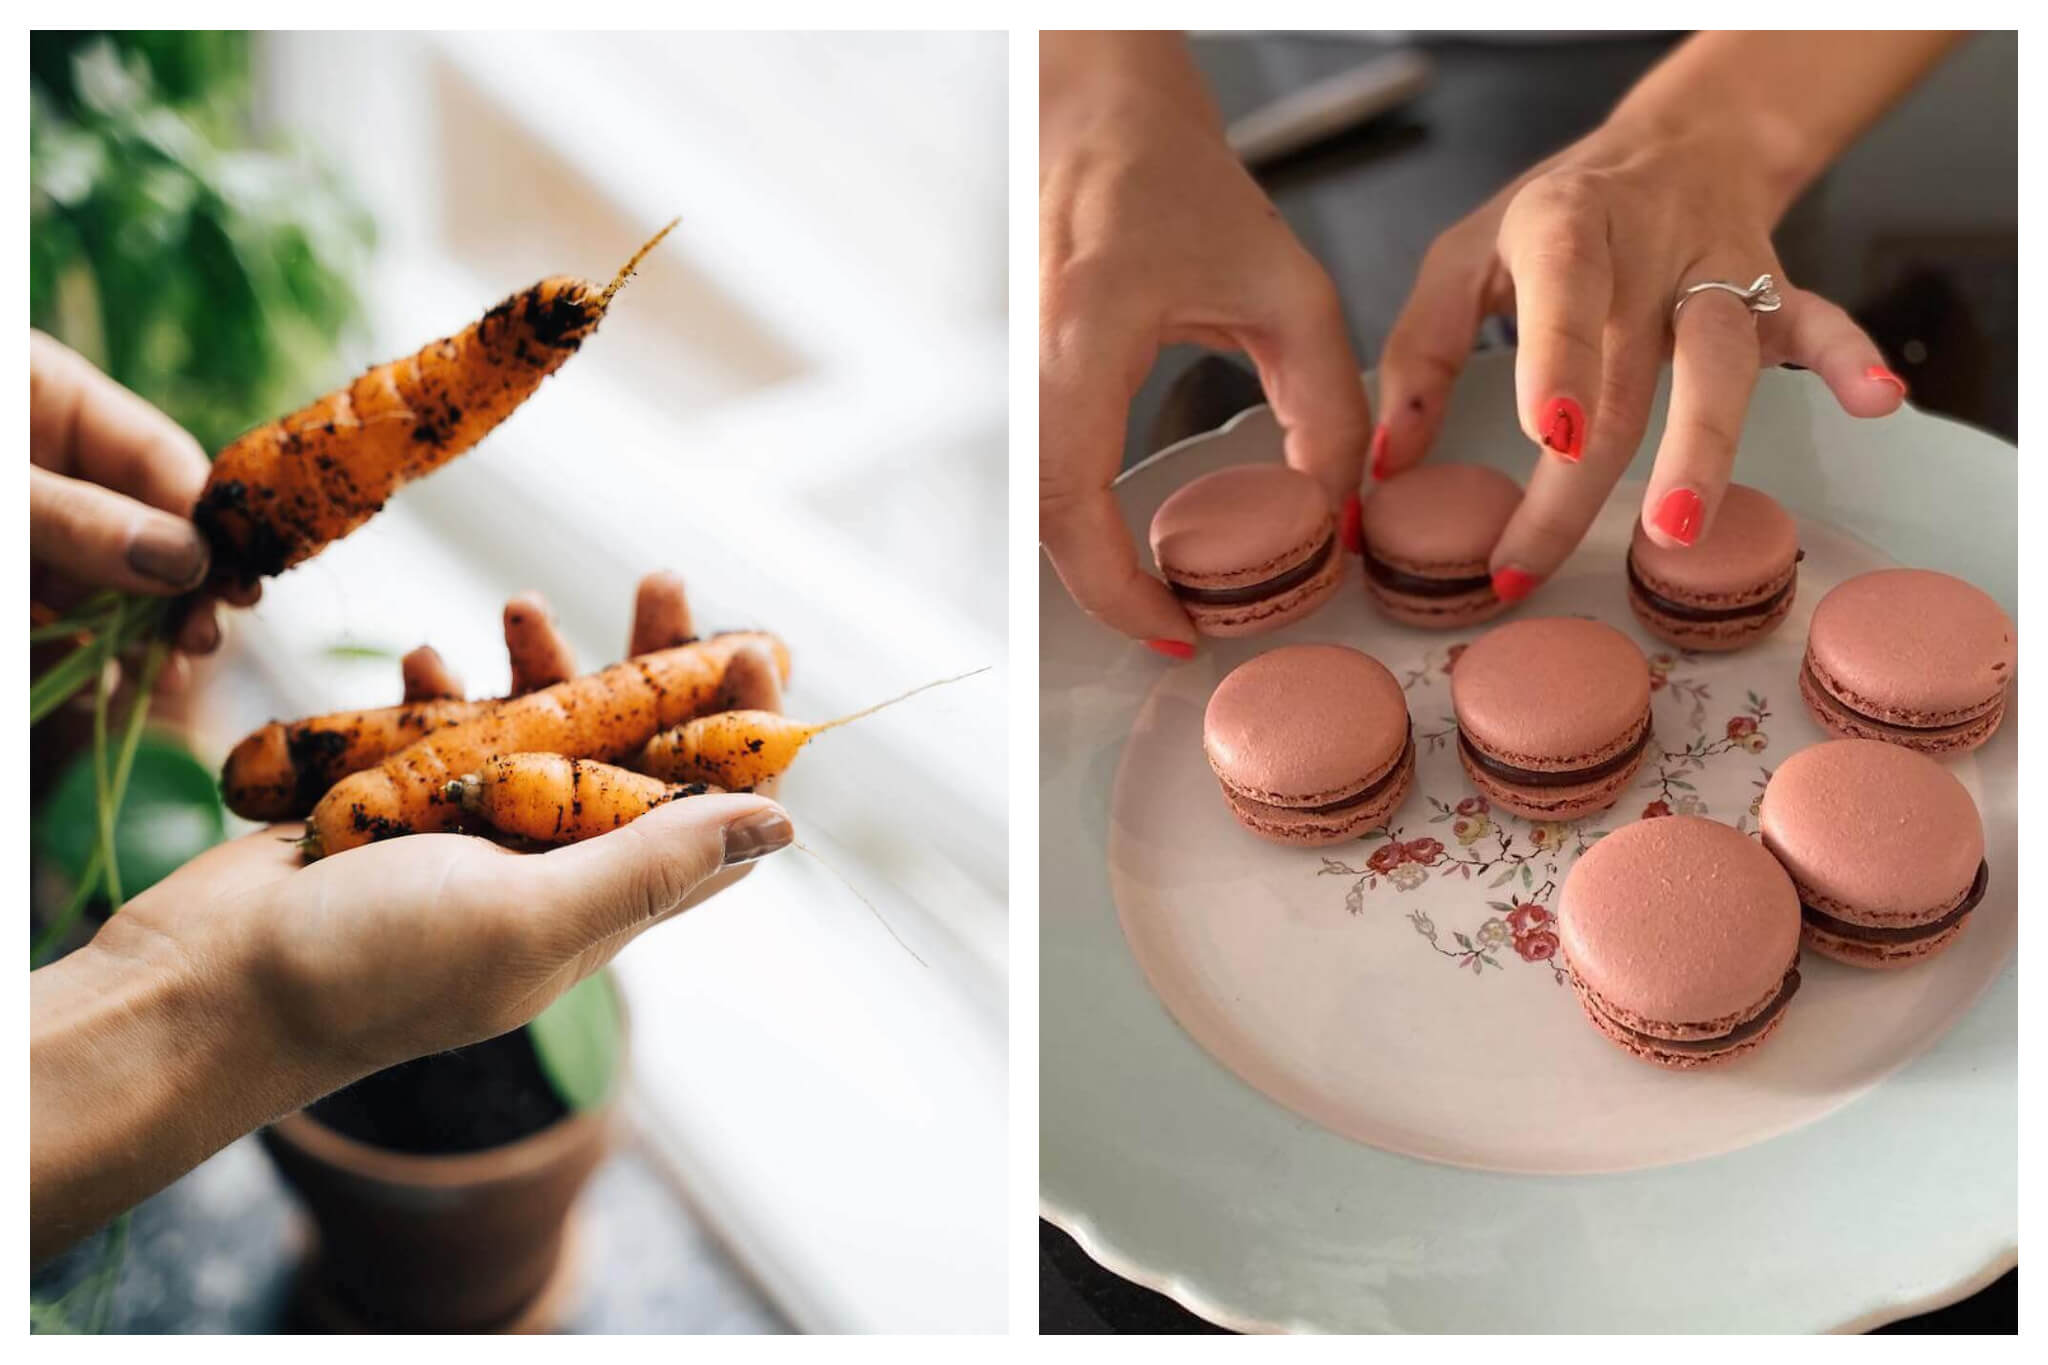 Left: A person holds four freshly harvested carrots, with dirt still visible on each of them, Right: A person delicately plates a batch of freshly baked macarons, which have pink cookies and a chocolate filling.